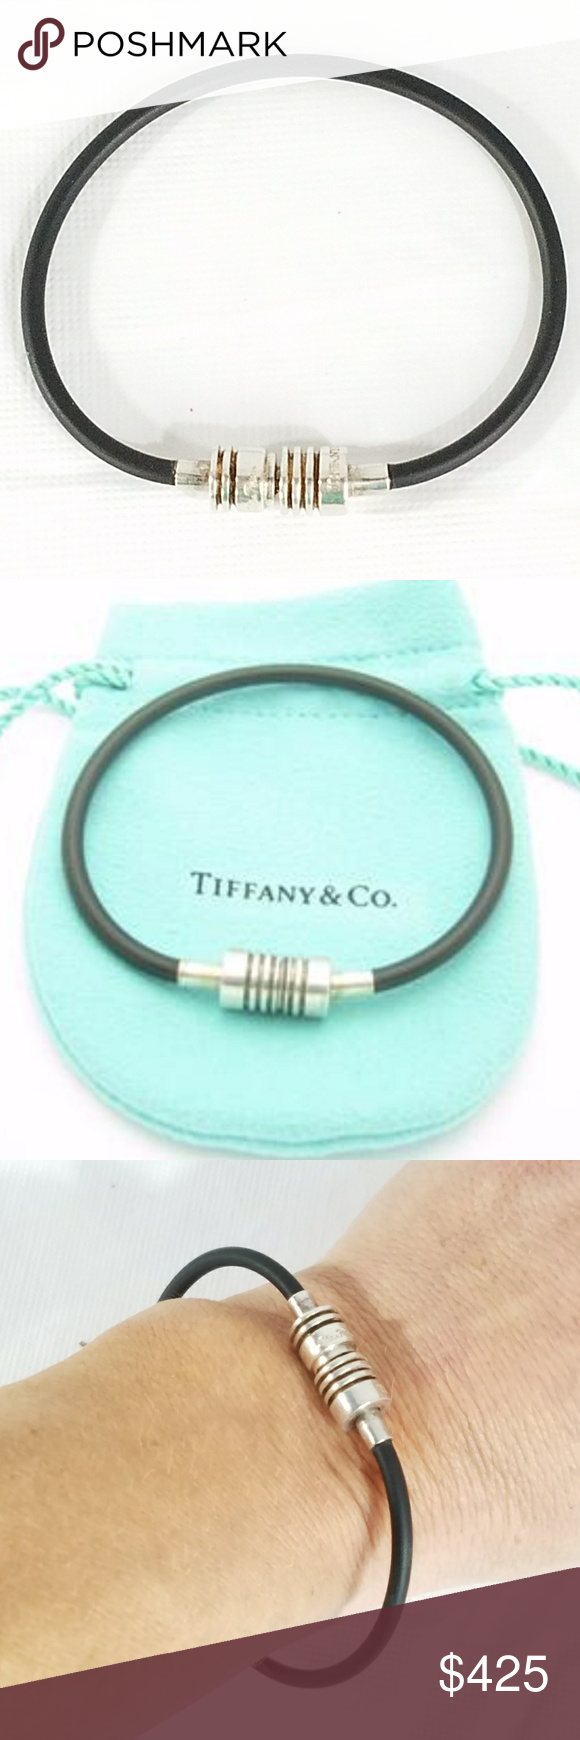 398ff8ab4 Picasso Groove Black Rubber Surfer Bracelet? Gorgeous Tiffany & Co.  Sterling Silver Picasso